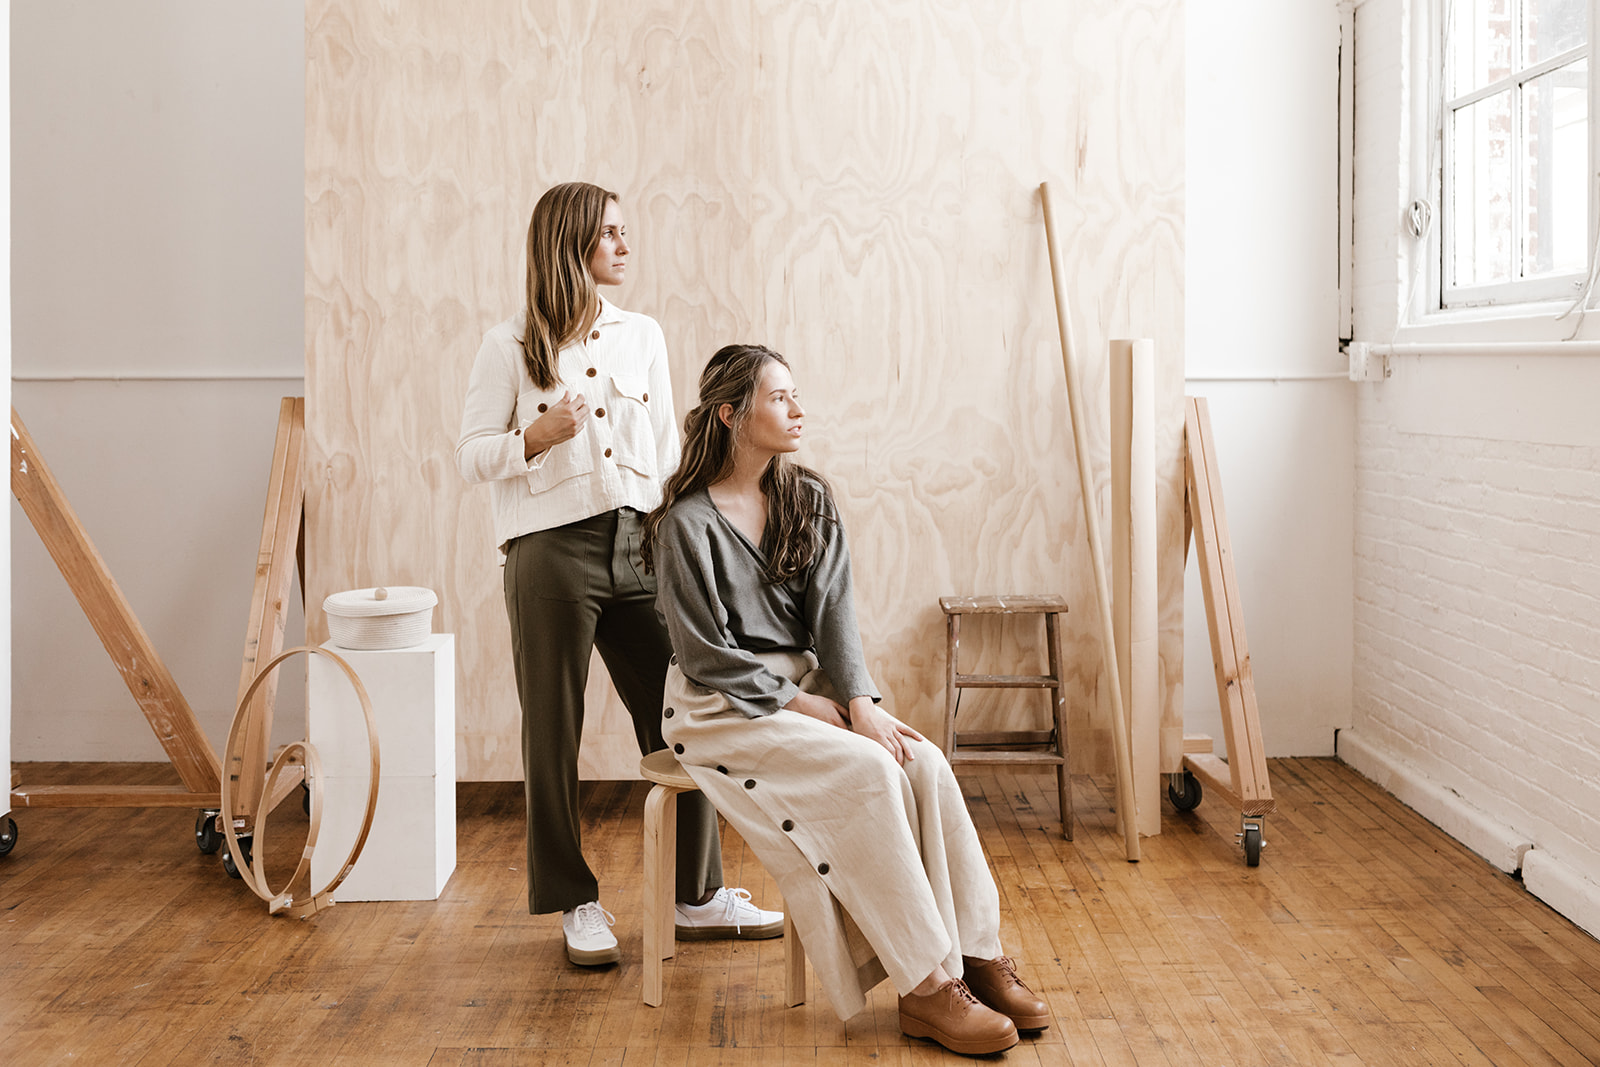 An Open Invitation to Create Awaits at The Portland Studio